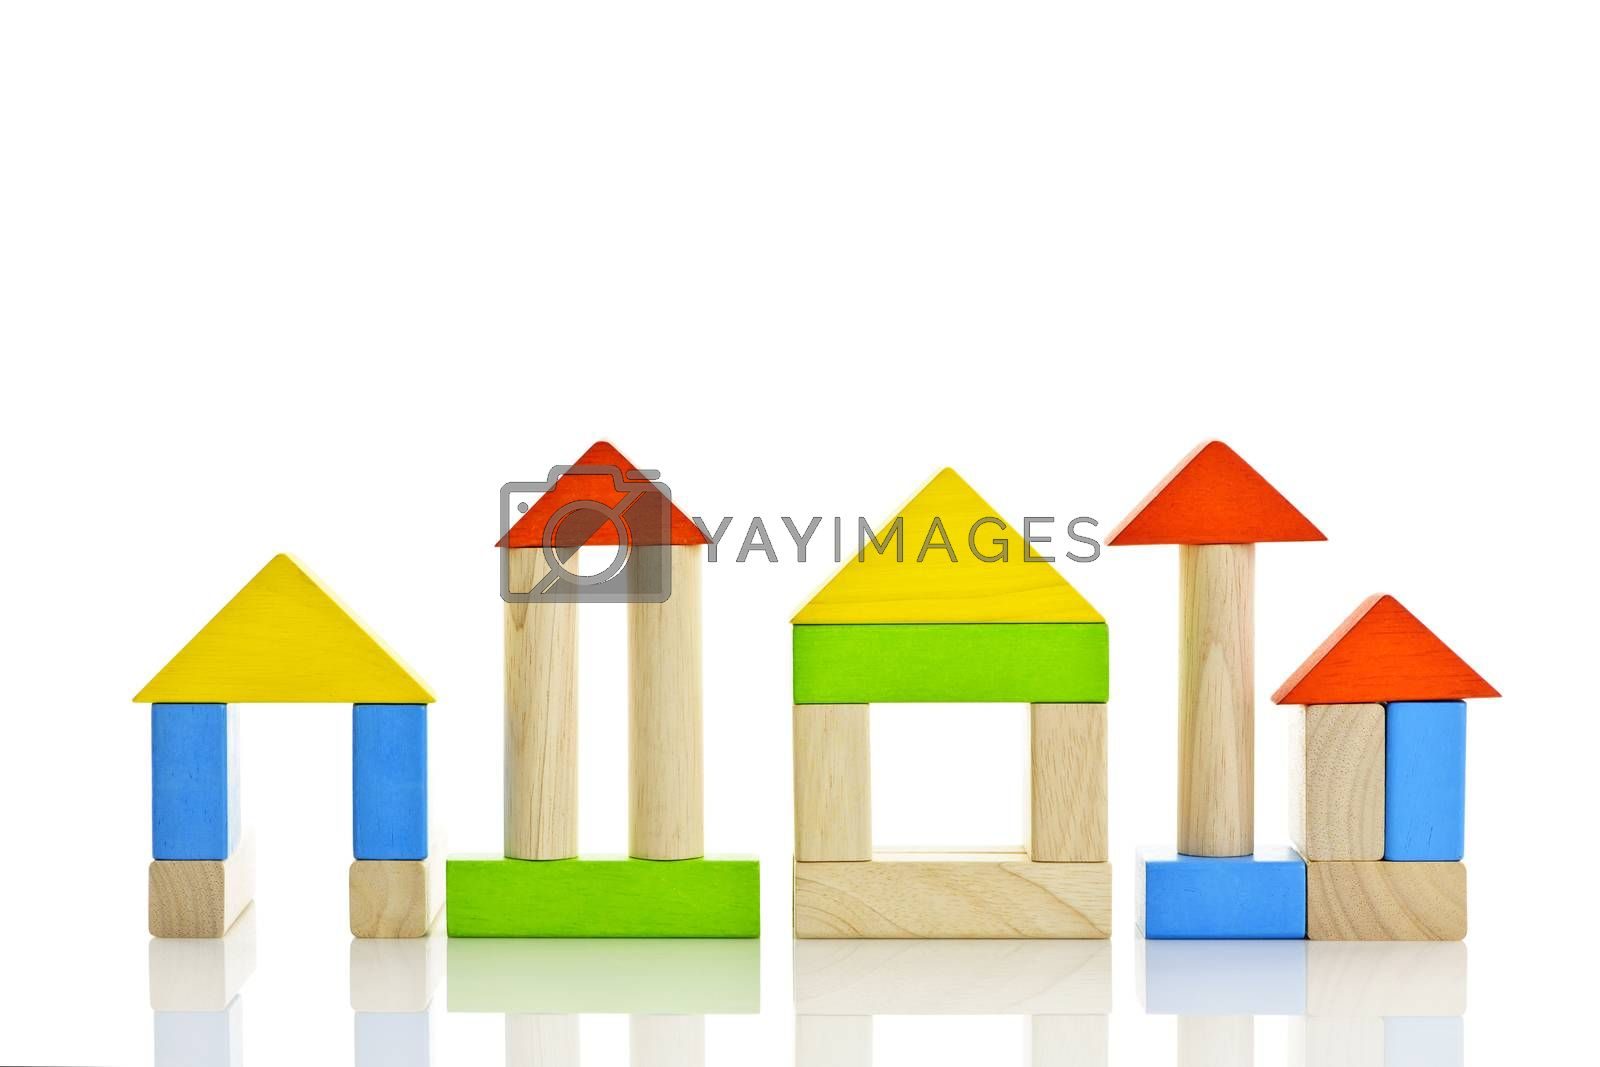 Buildings constructed out of toy wooden building blocks